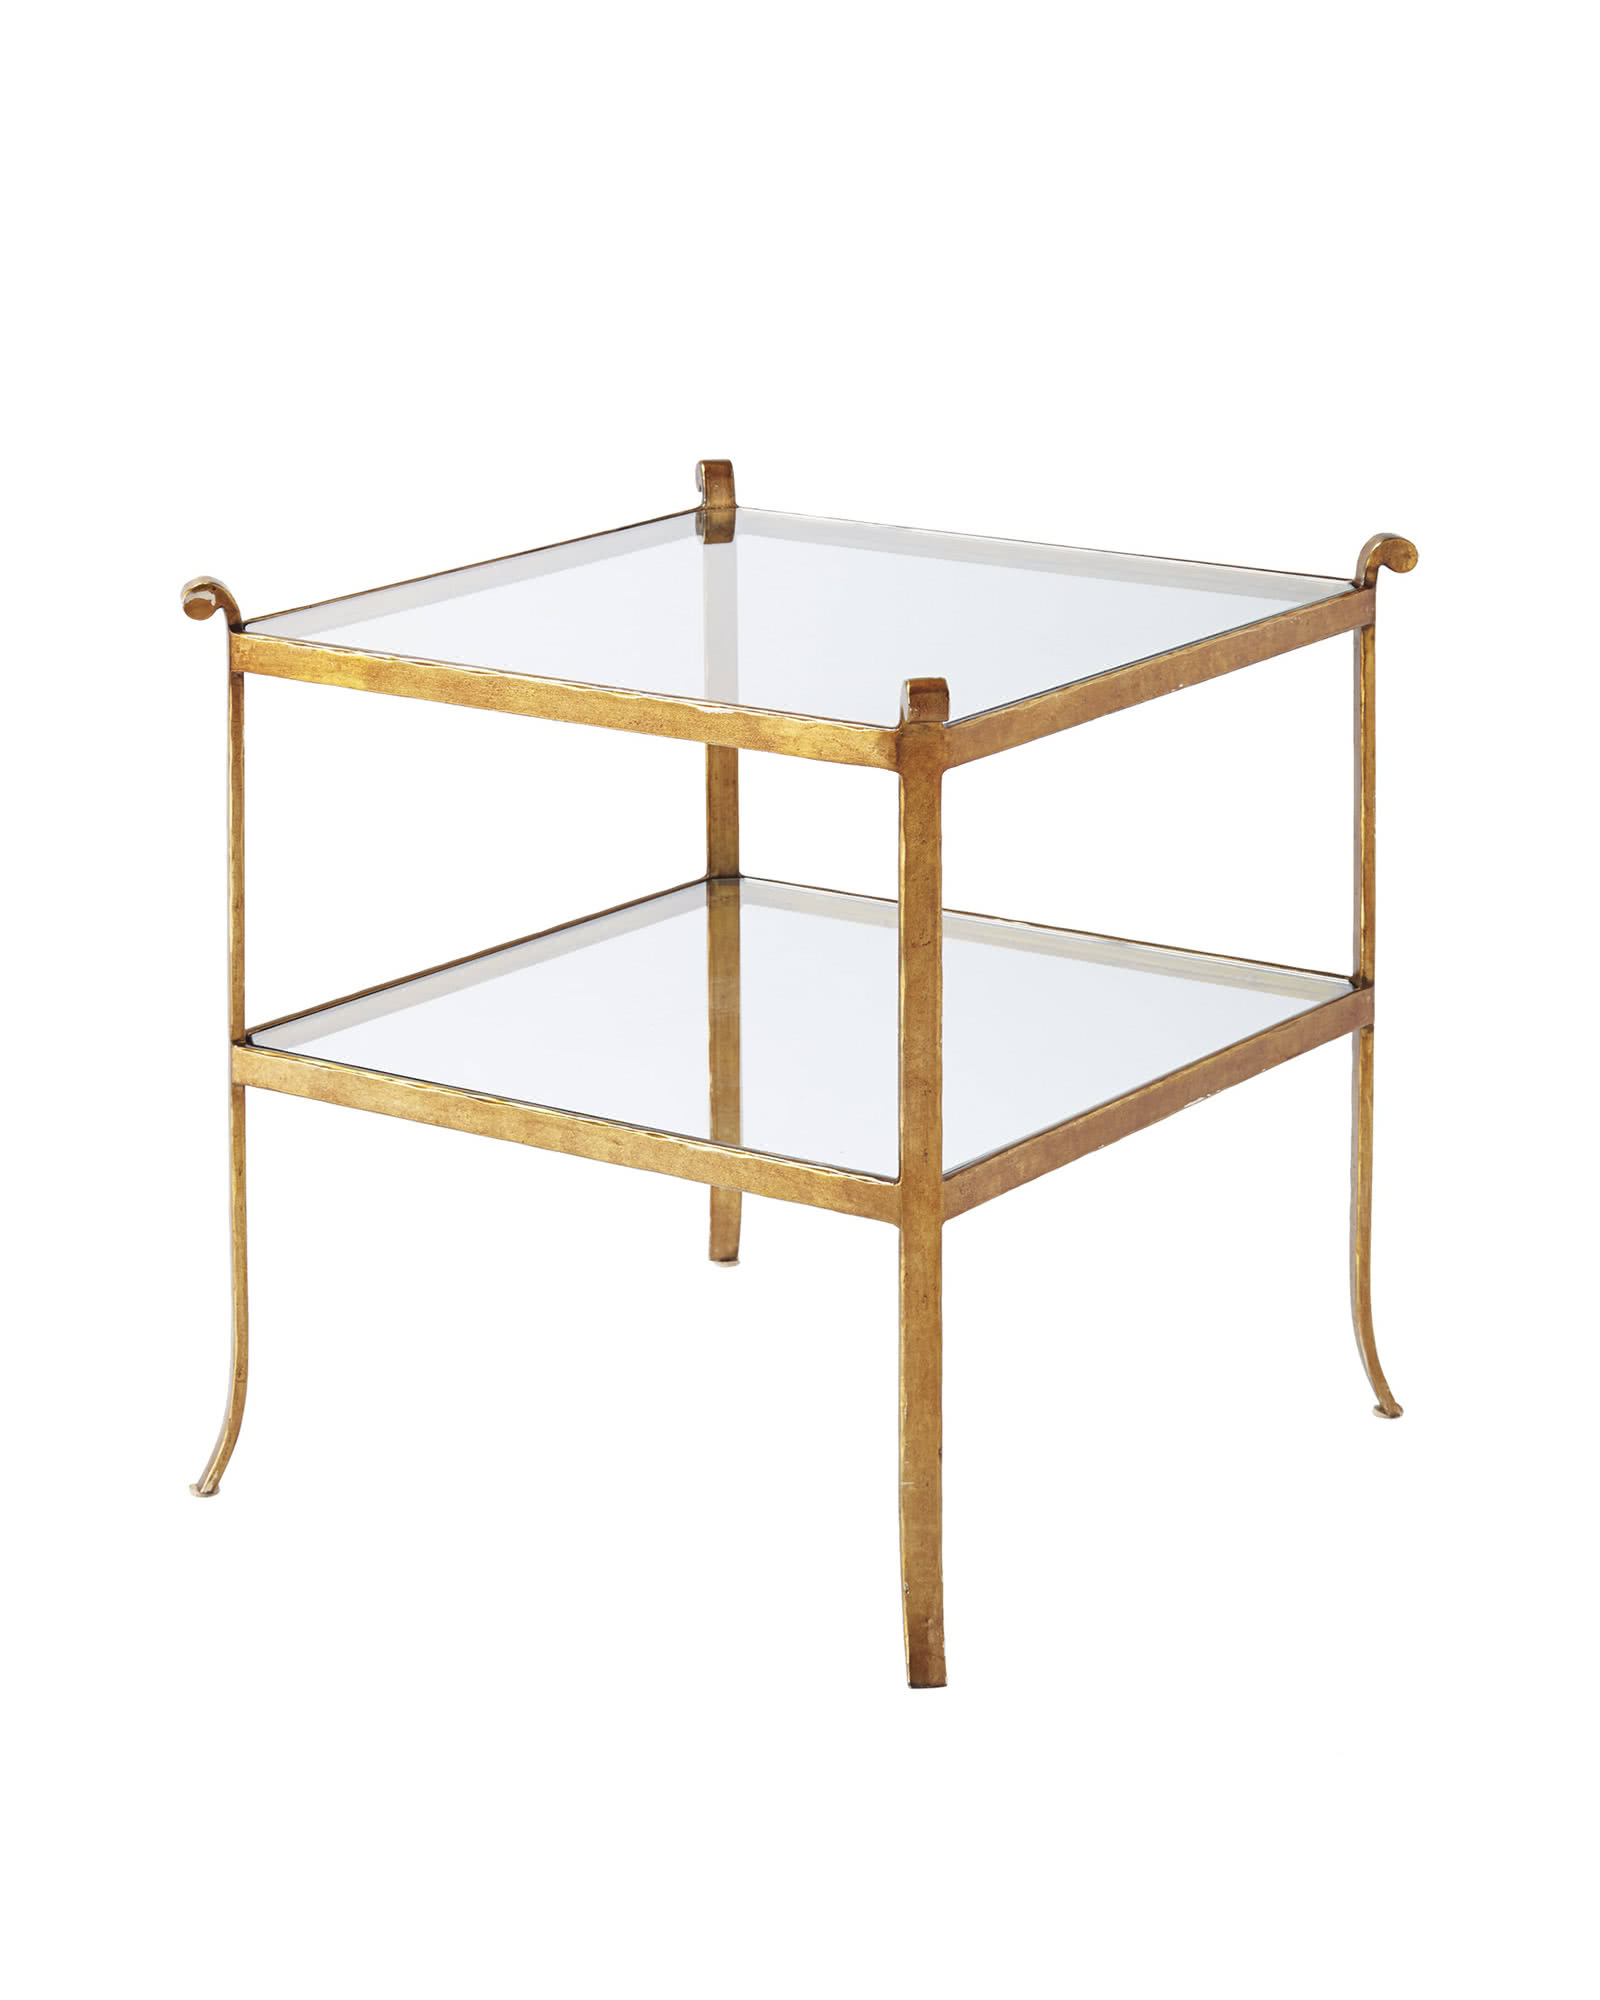 St Germain Square Side Table